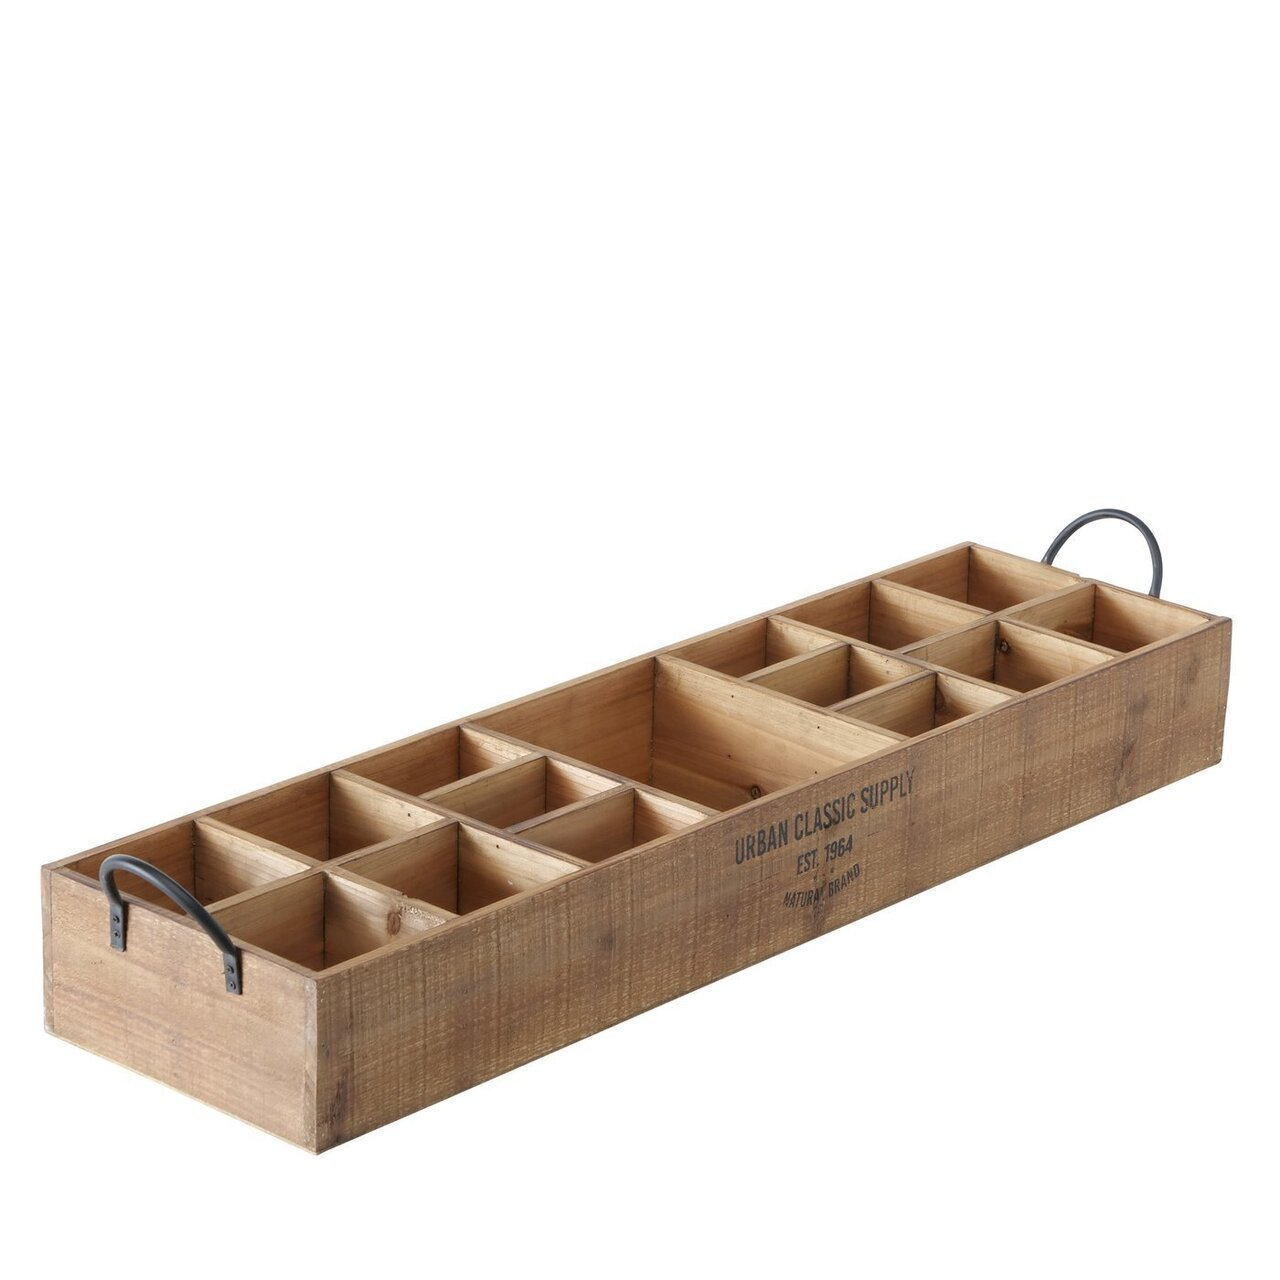 Boltze Holzkiste Box Urban Classic Supply